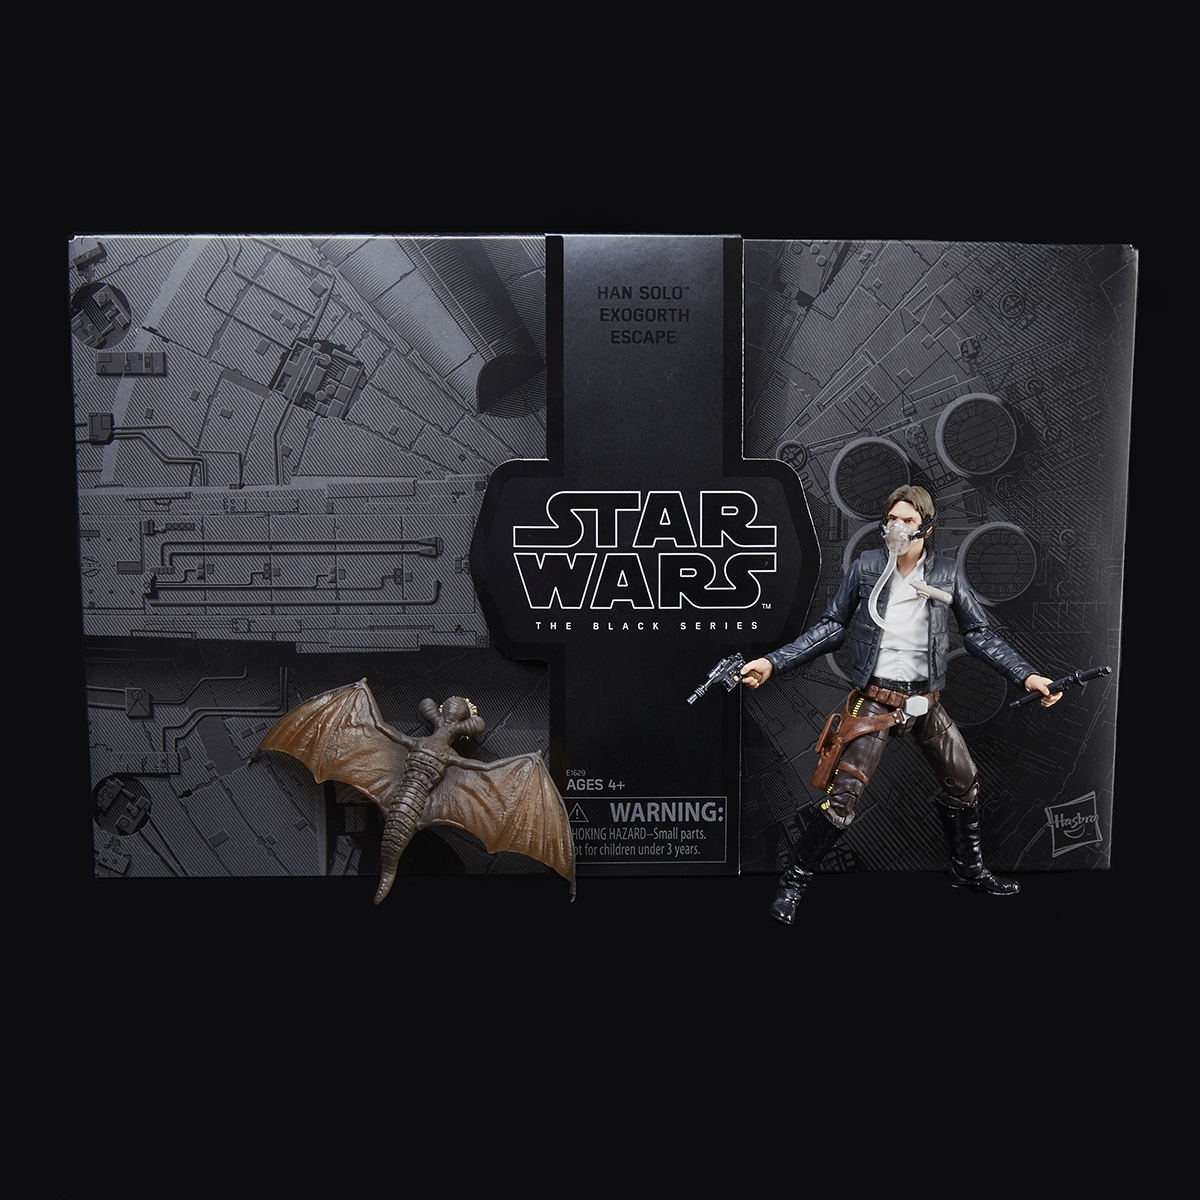 Star Wars: The Black Series Han Solo & Mynock Figues